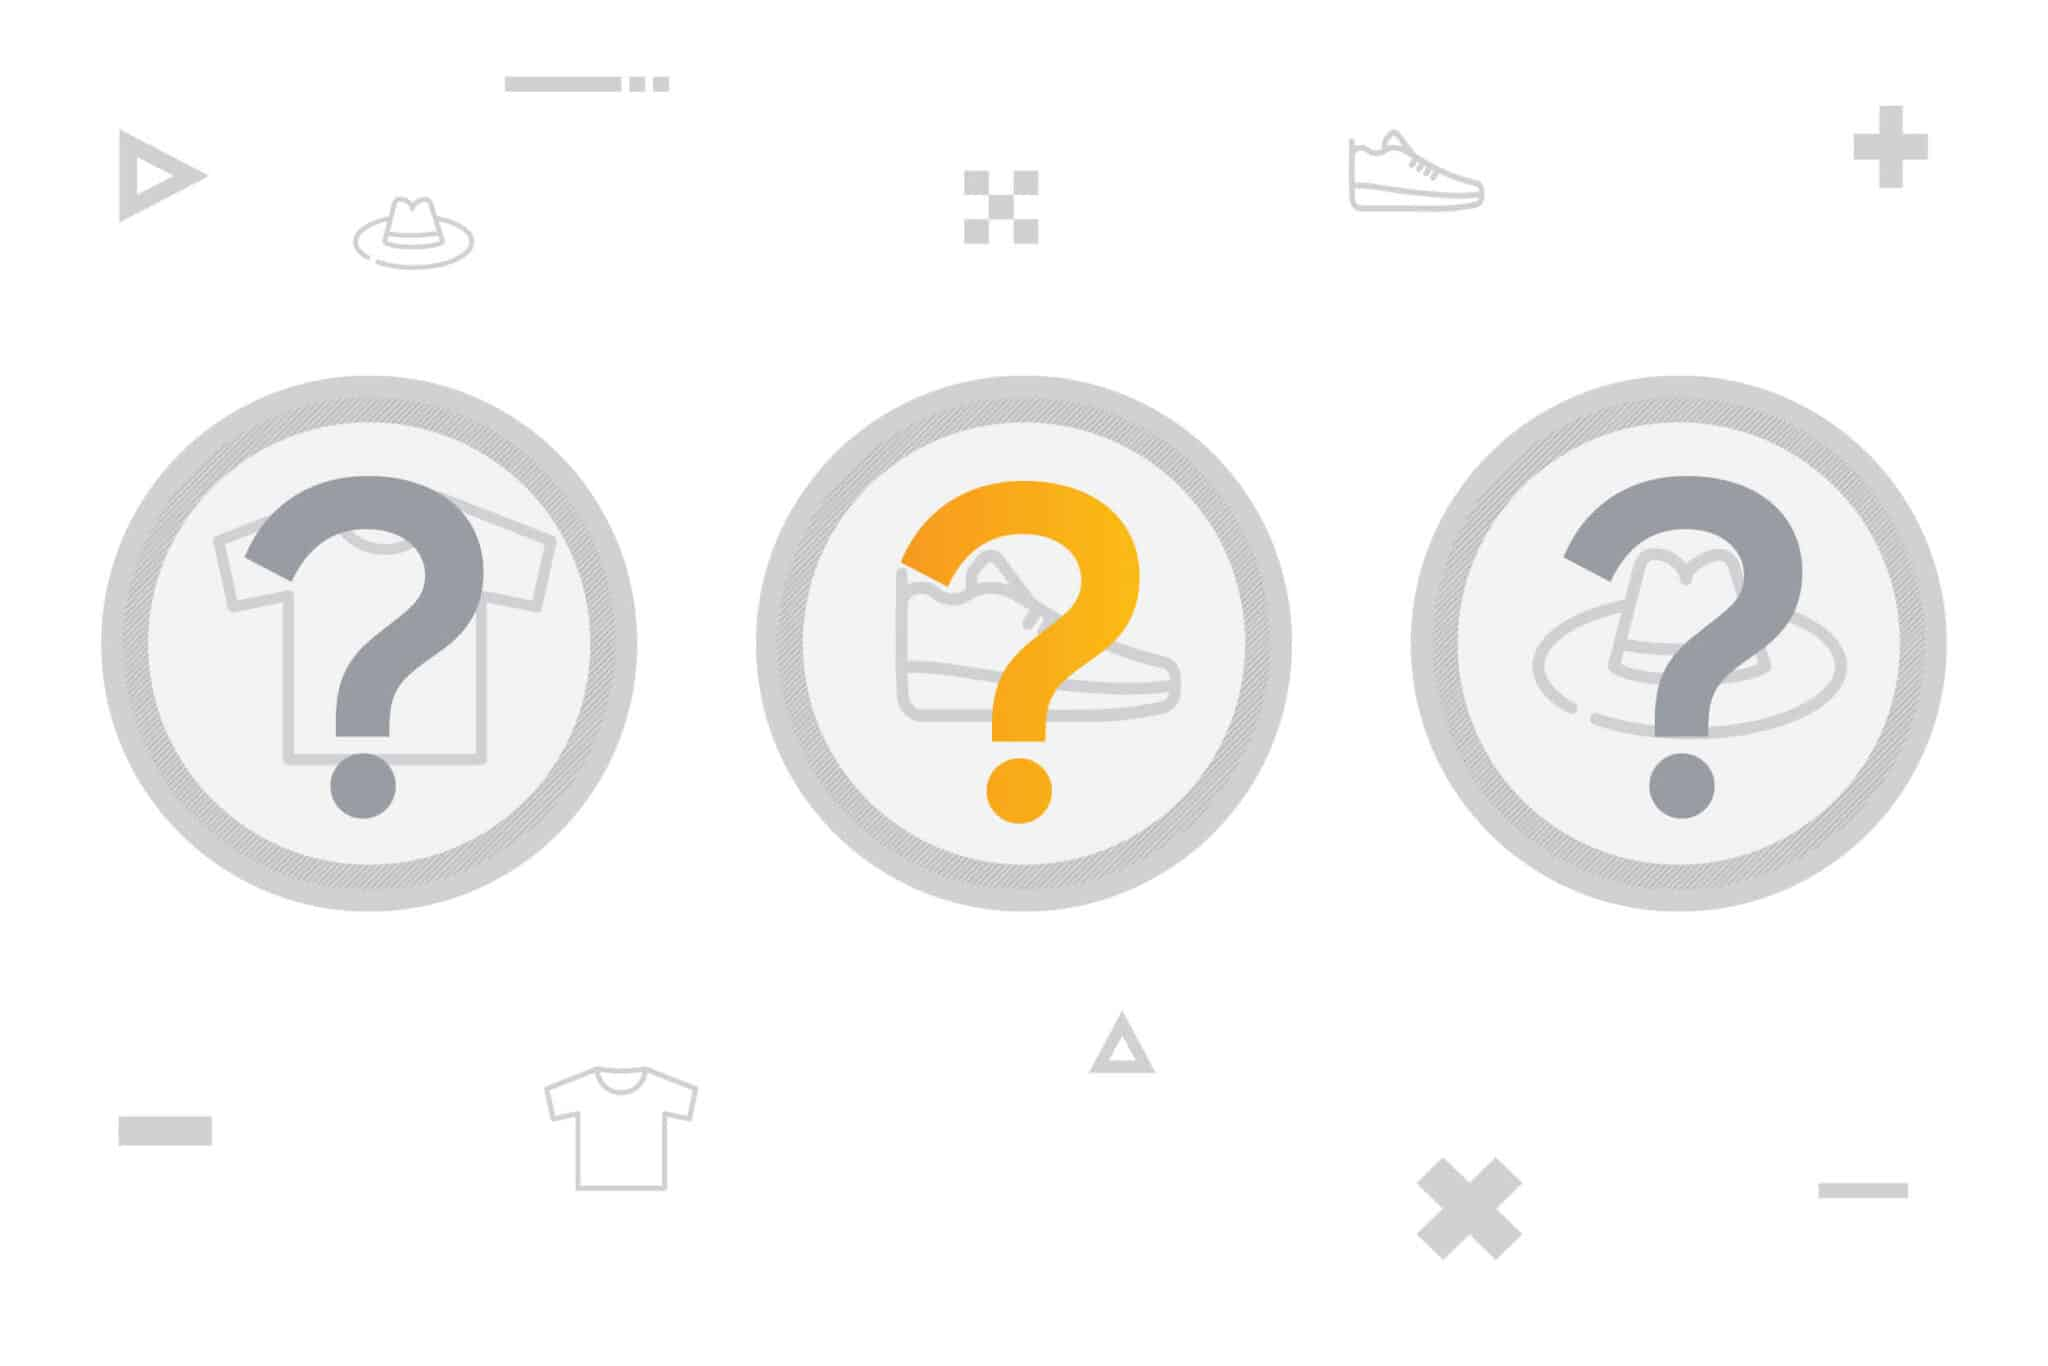 Fotos von der russischen Dating-Website